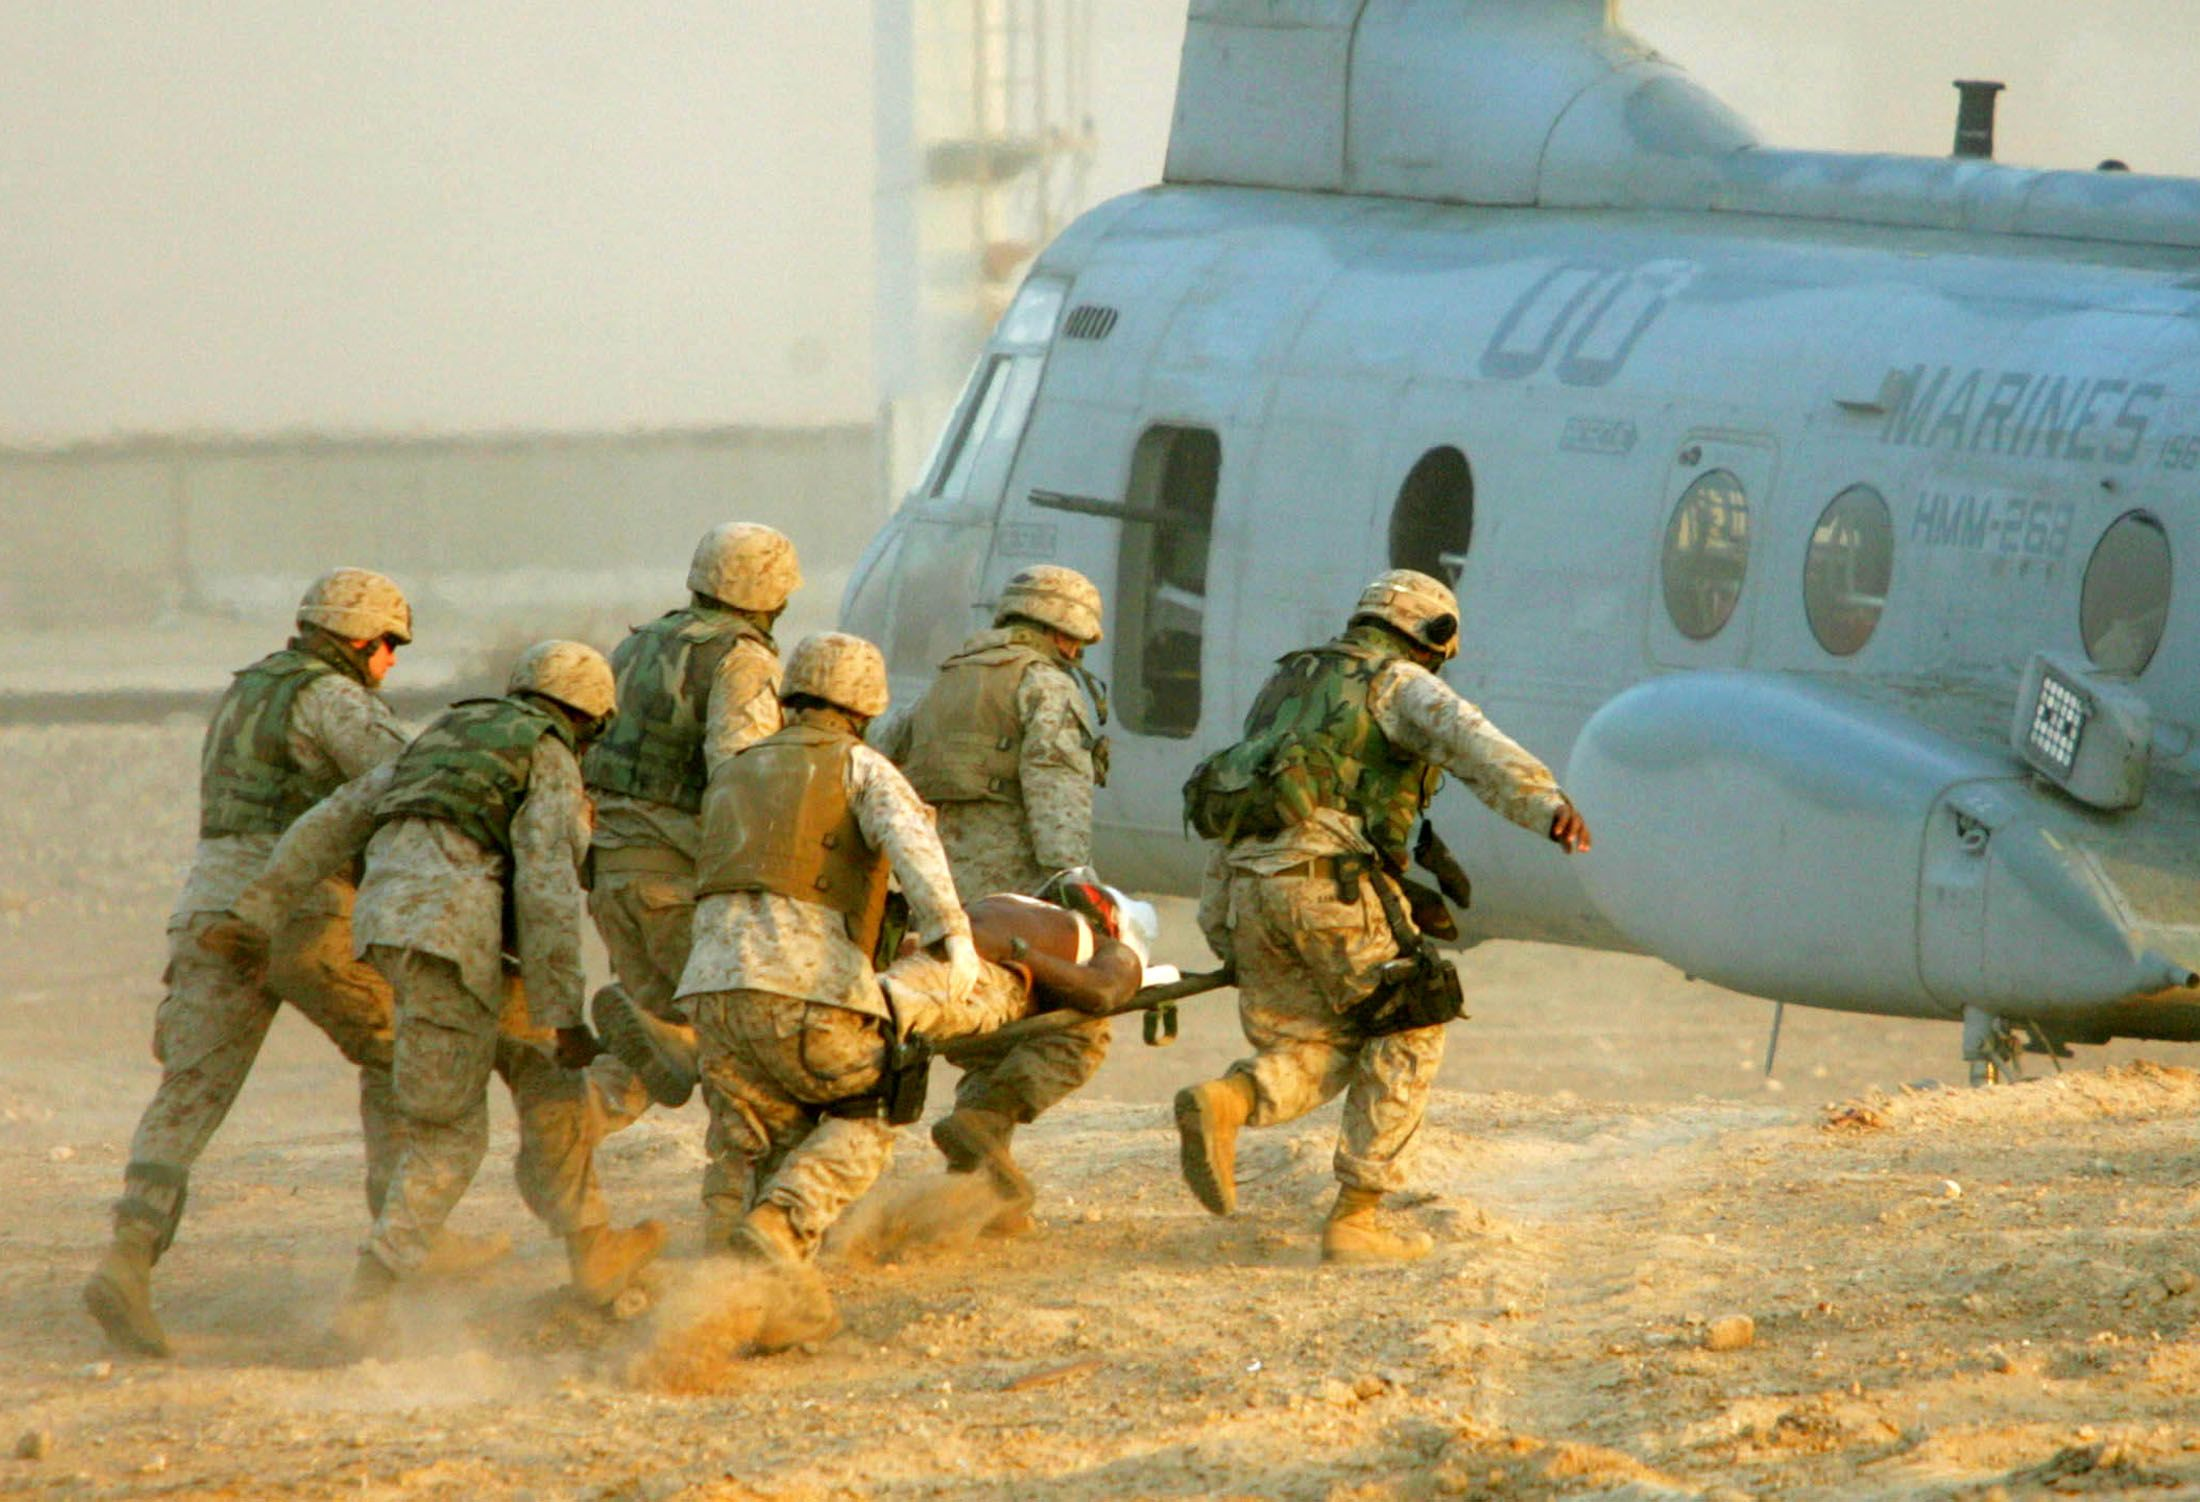 U.S. Marines carry an injured colleague to a helicopter near the city of Falluja, November 10, 2004. ELIANA APONTE/REUTERS